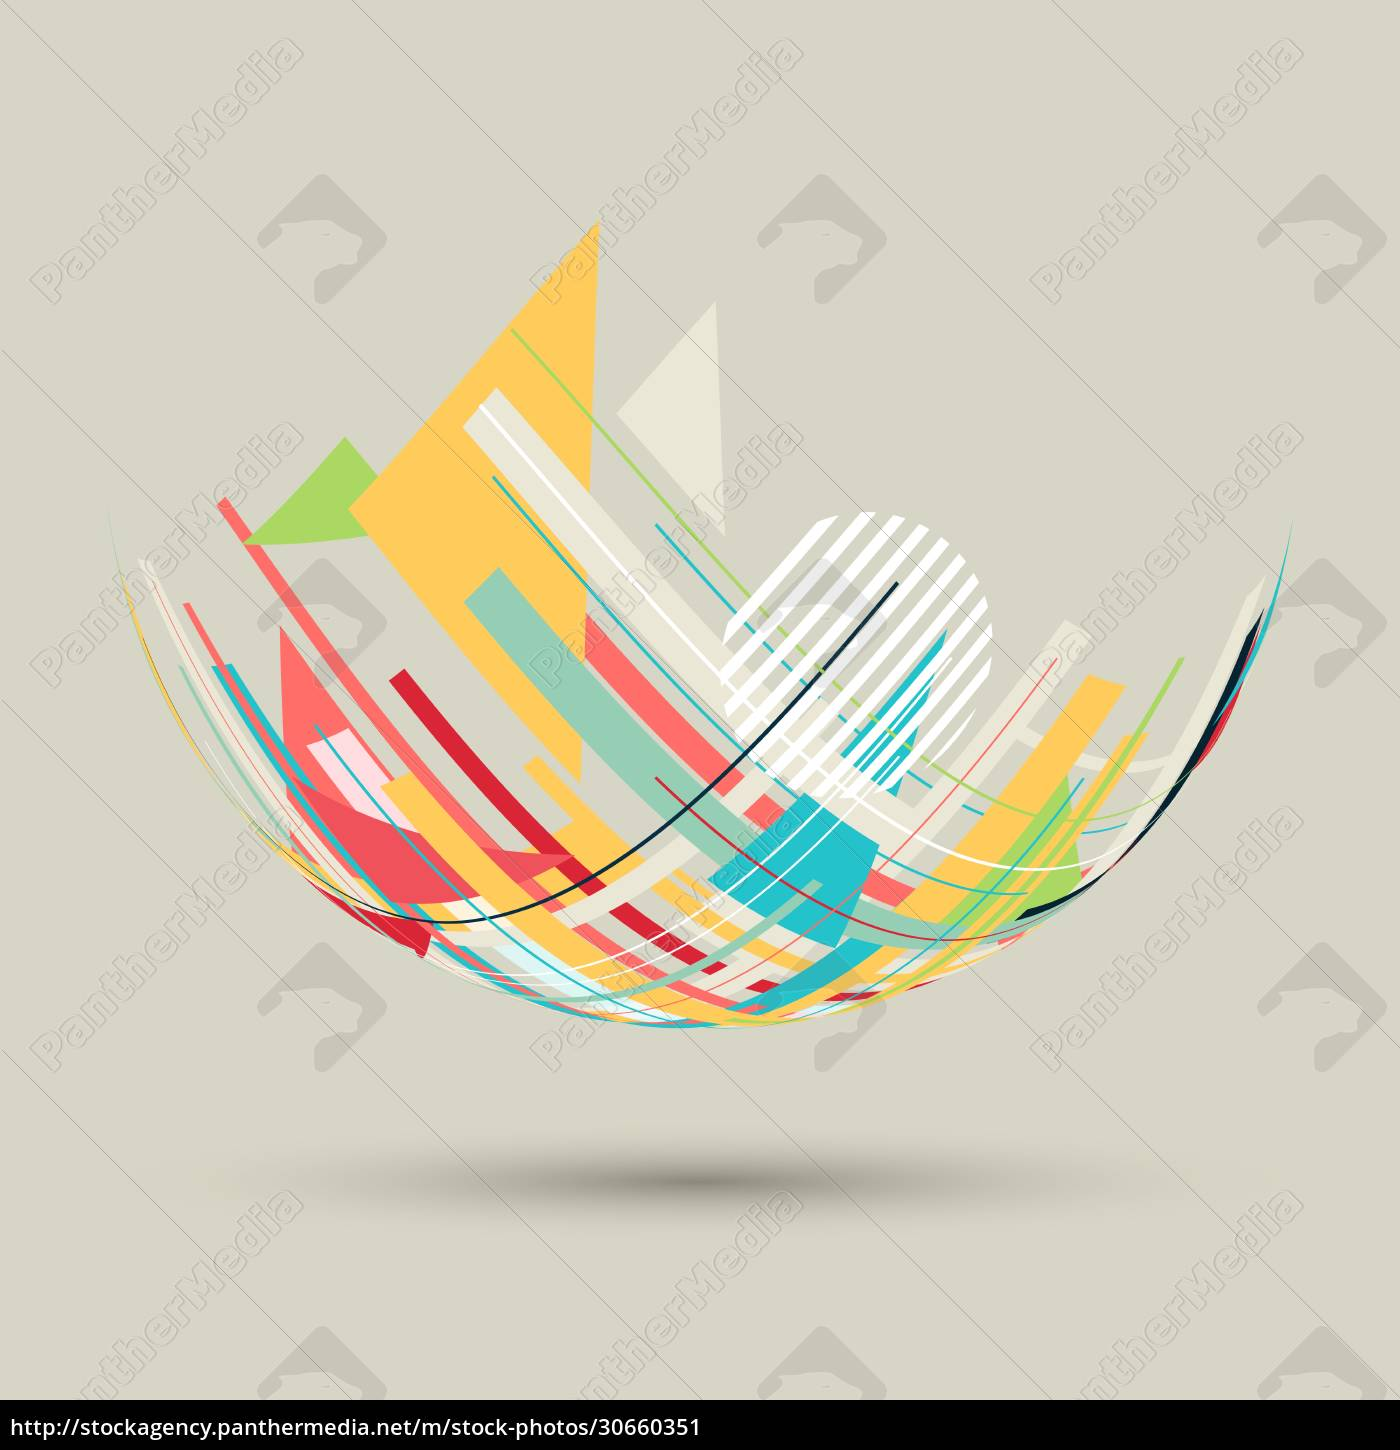 abstract, design, background - 30660351